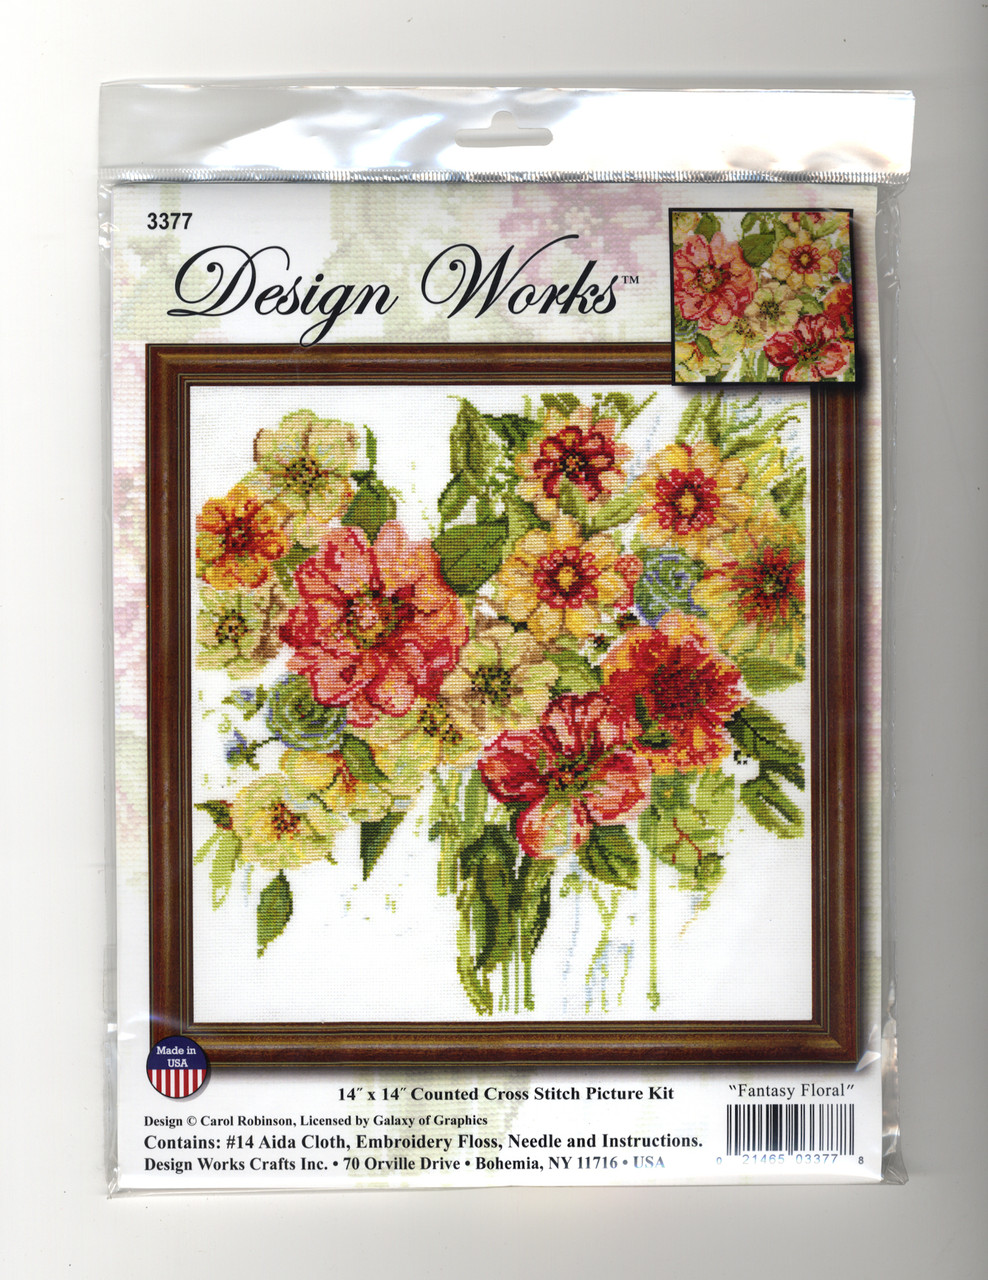 Design Works - Fantasy Floral